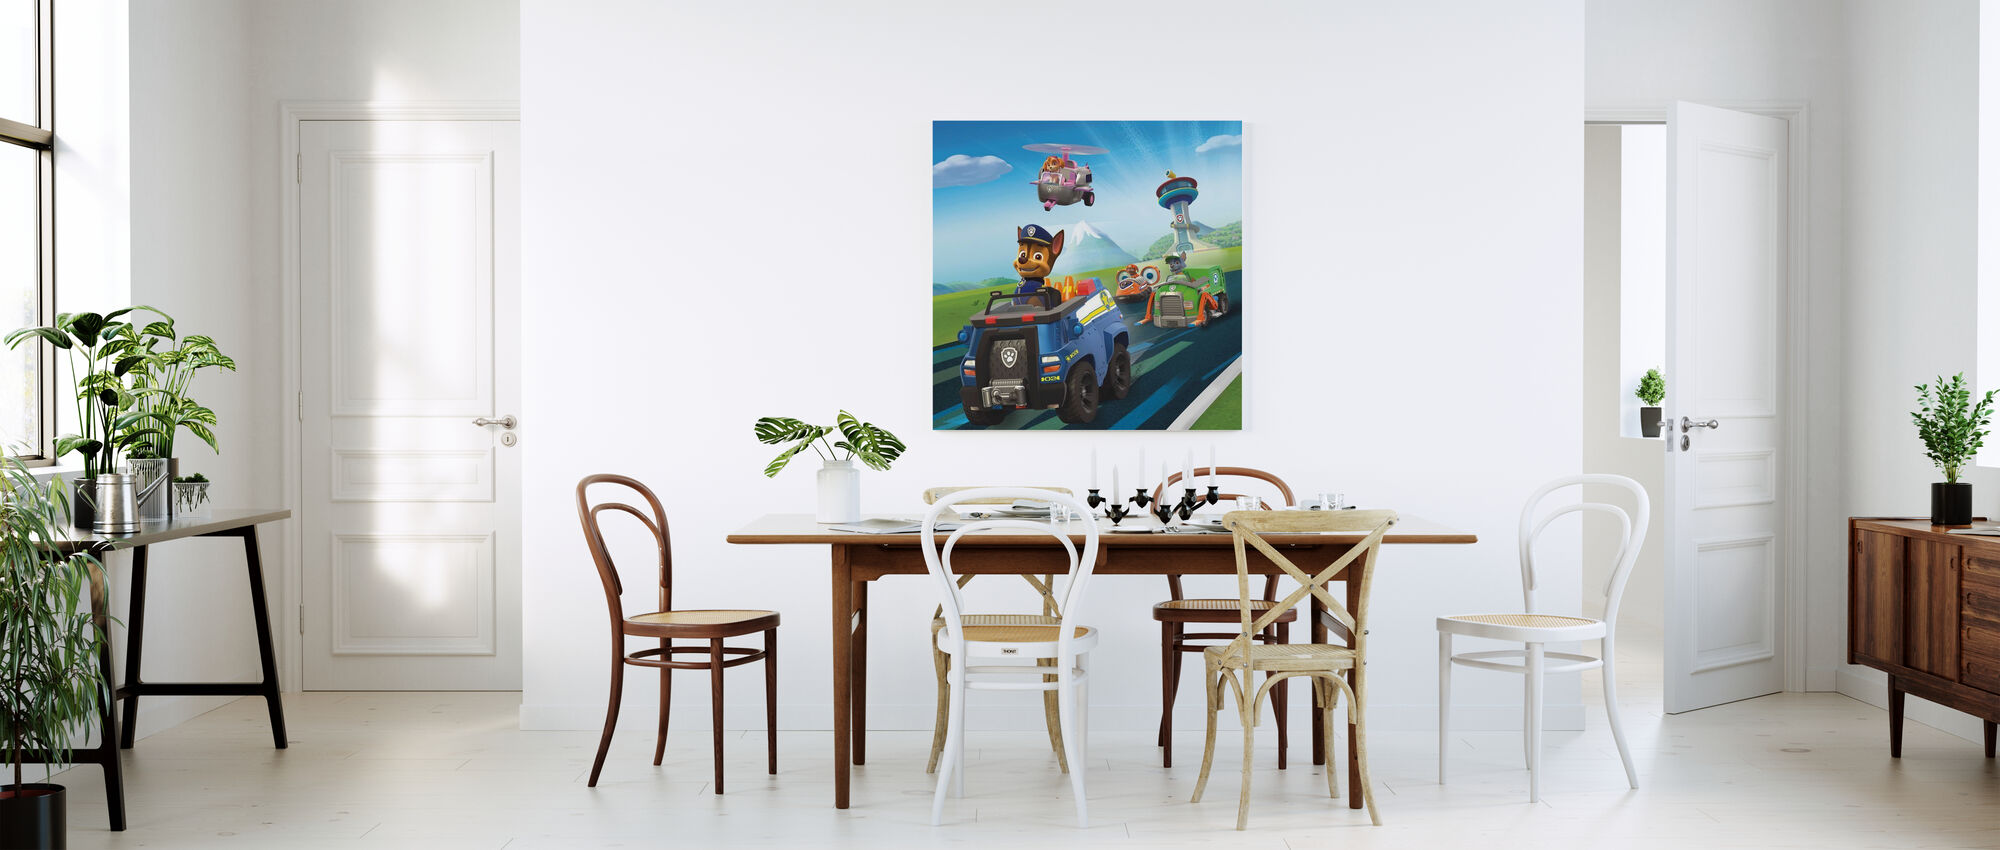 PAW Patrol - Let's roll - Canvas print - Kitchen